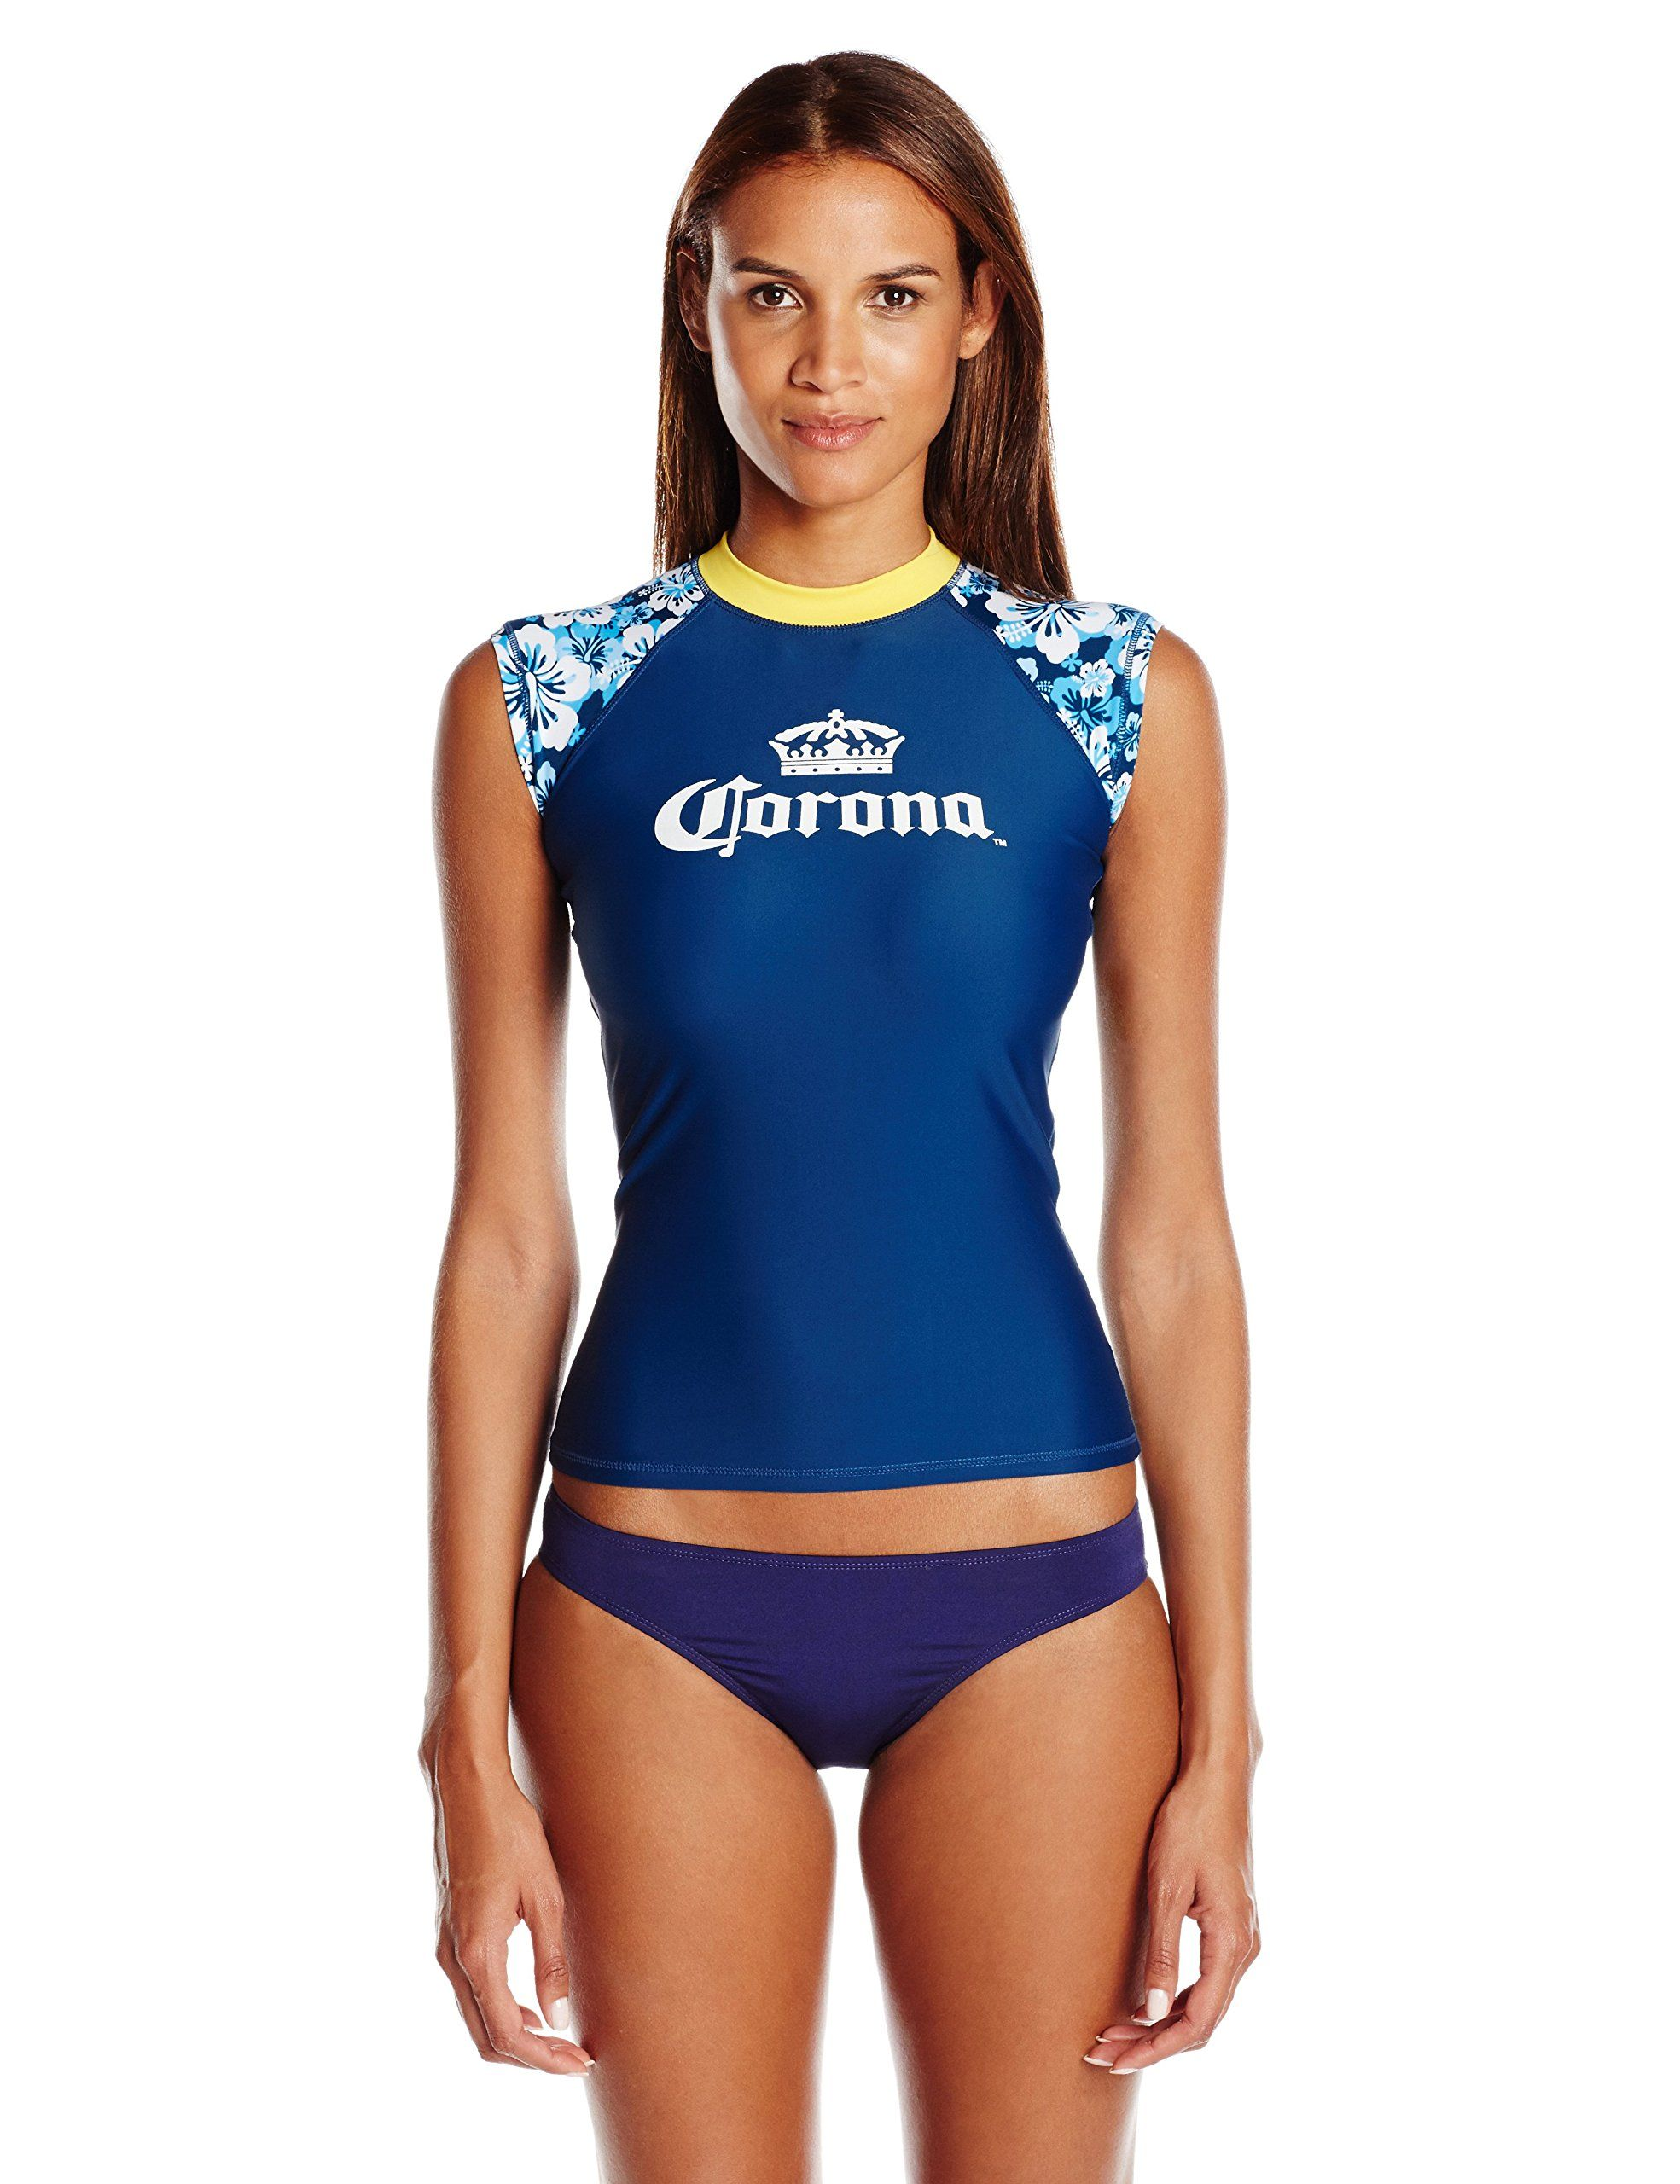 Corona Women s Floral Cap Sleeve Rash Guard 5e0d209d2